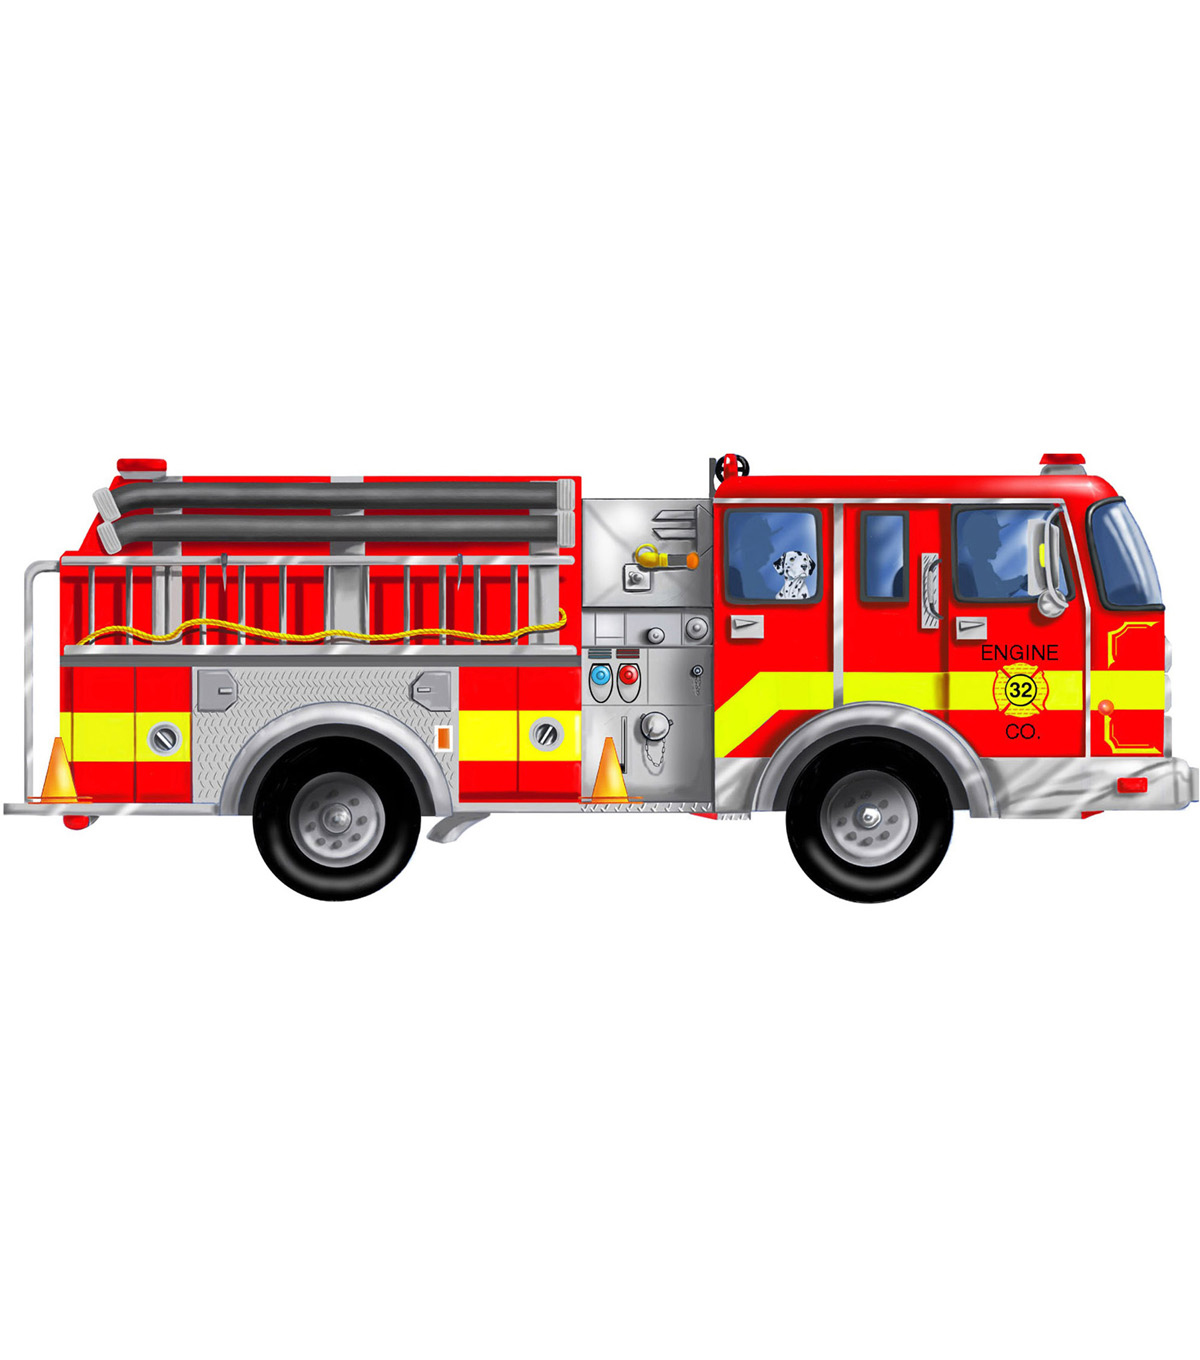 Giant Fire Truck Floor Puzzle - 24 Pieces